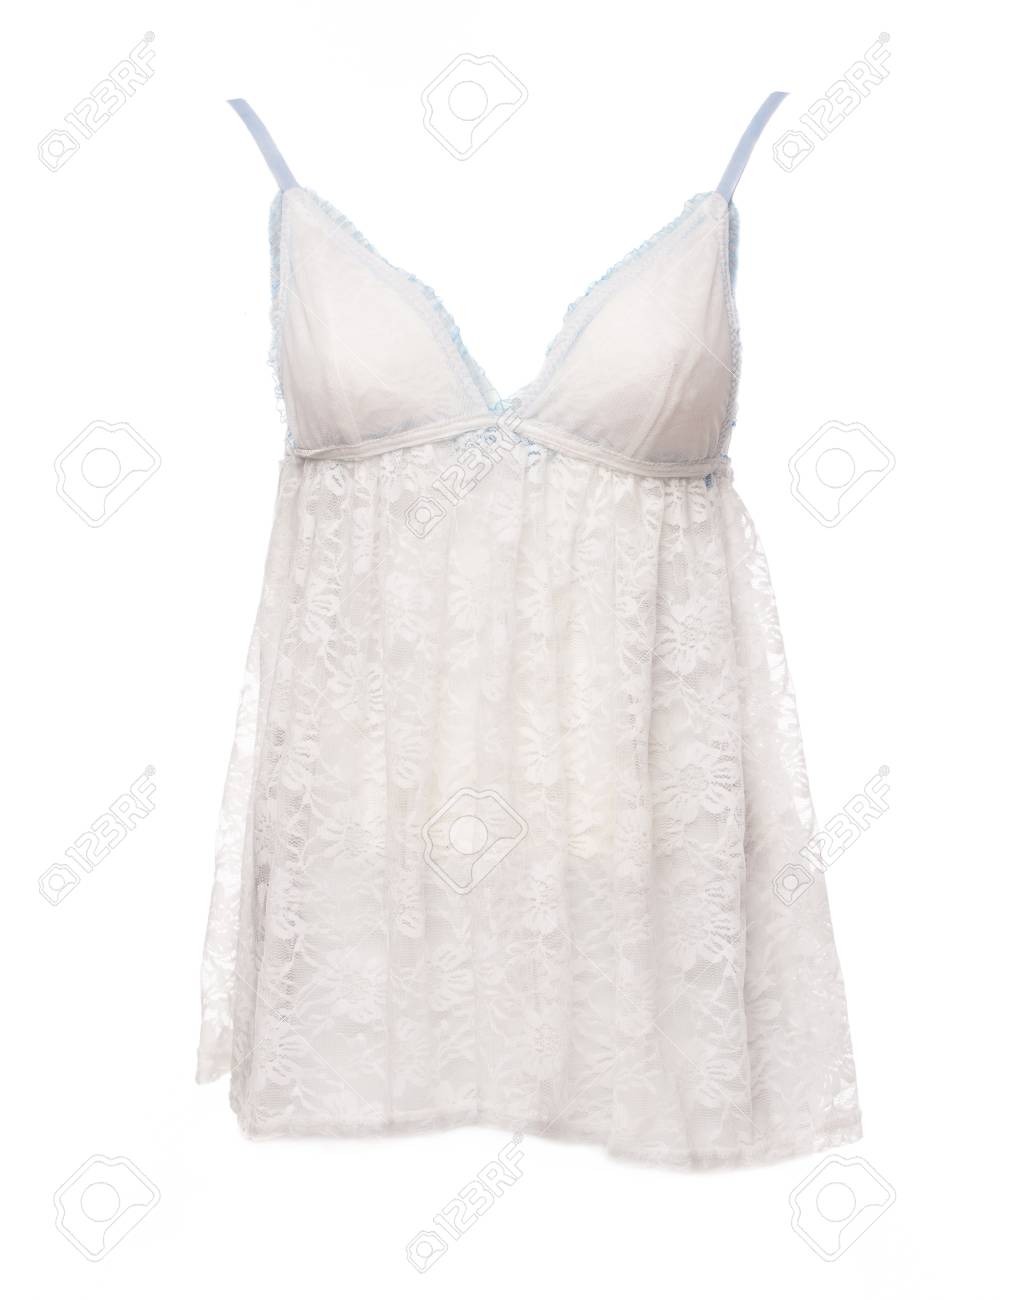 Satin Women\'s Nightgown Isolated On A White Background Stock Photo ...